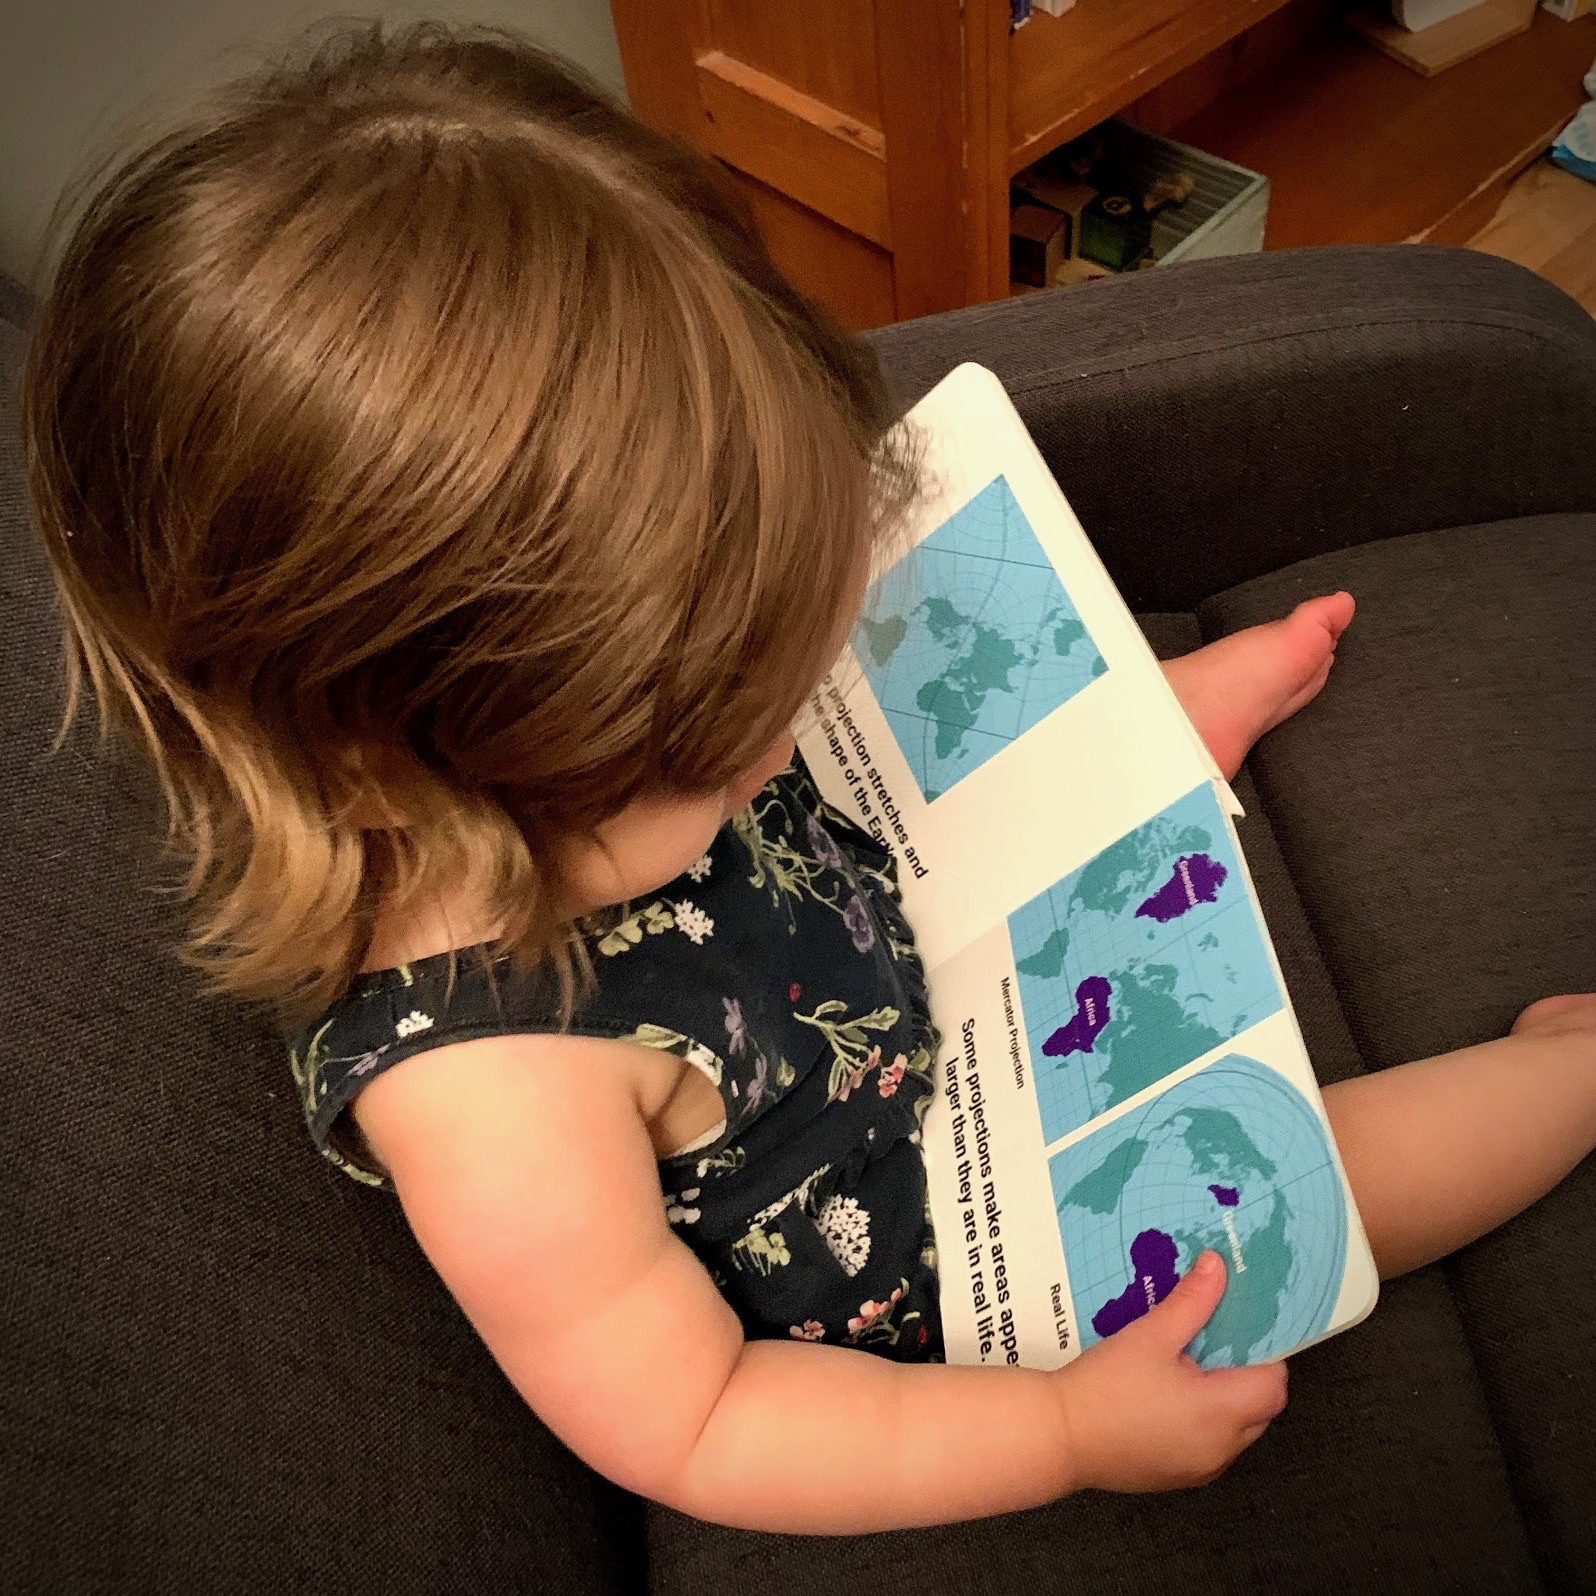 Map Projections for Babies by Dan Ford